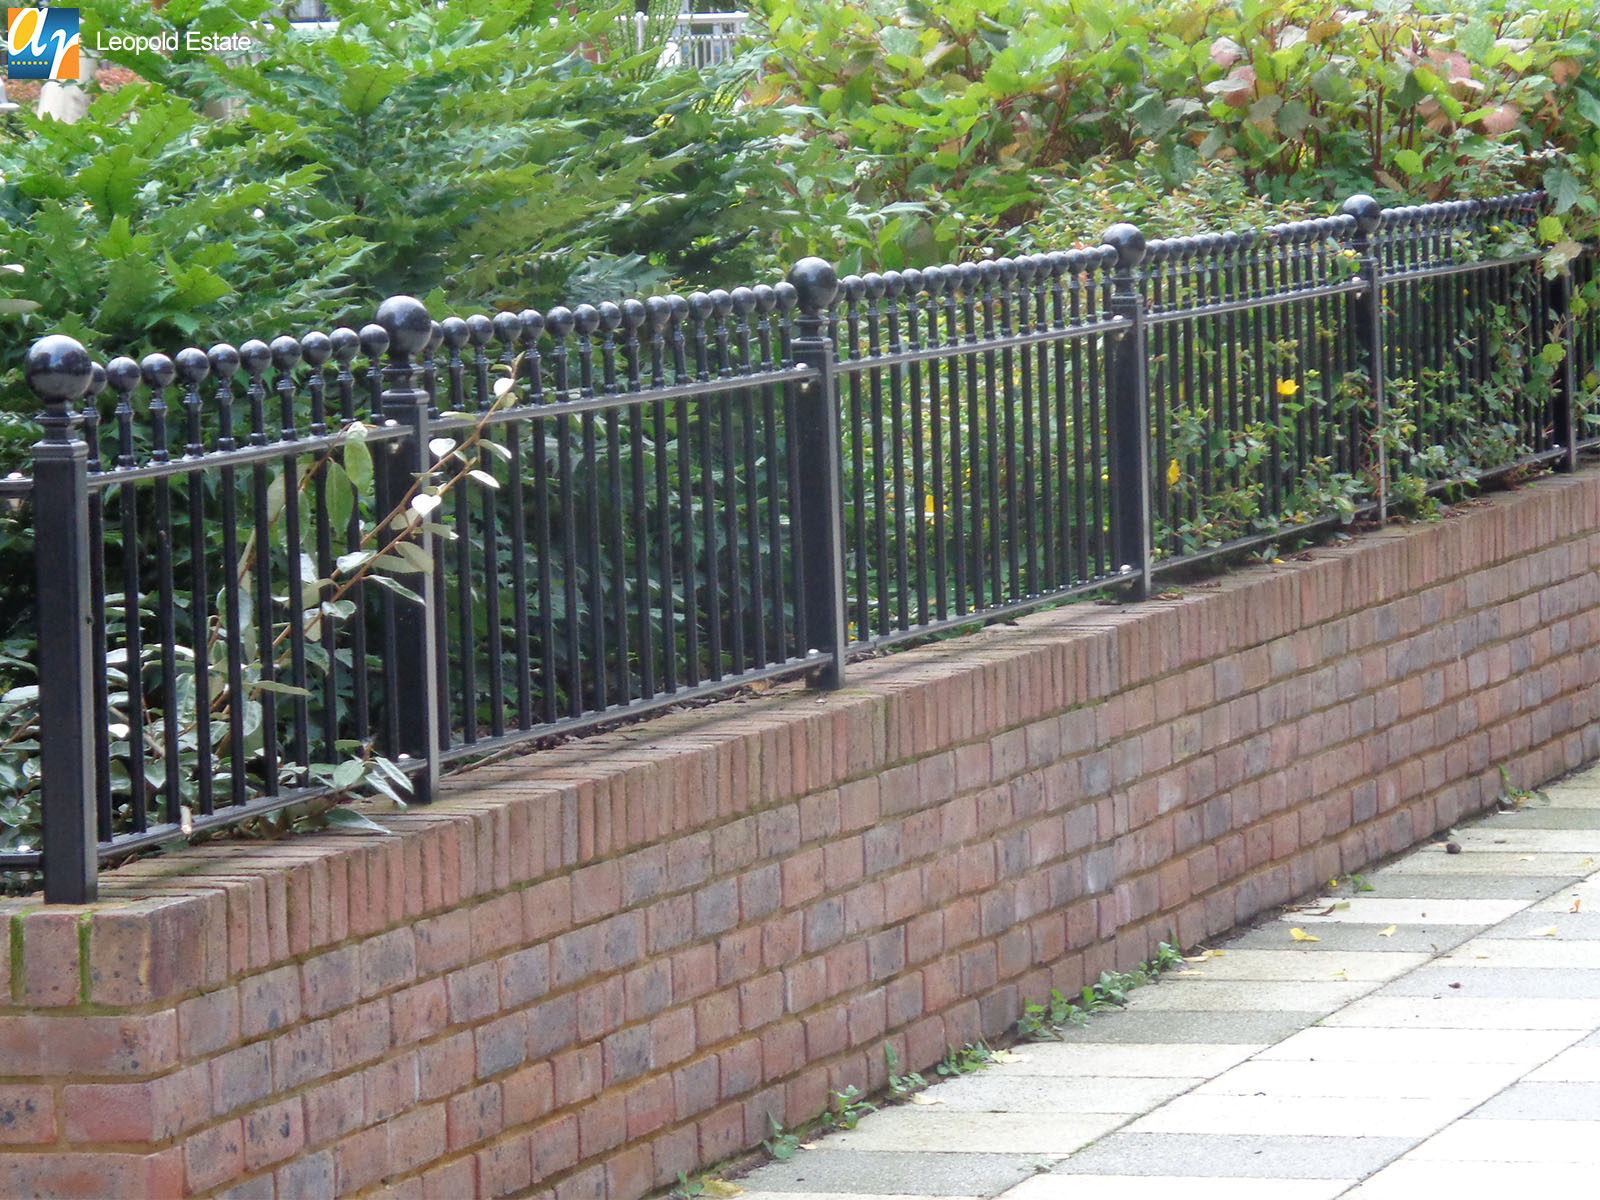 Leopold Estate Humber vertical bar railings